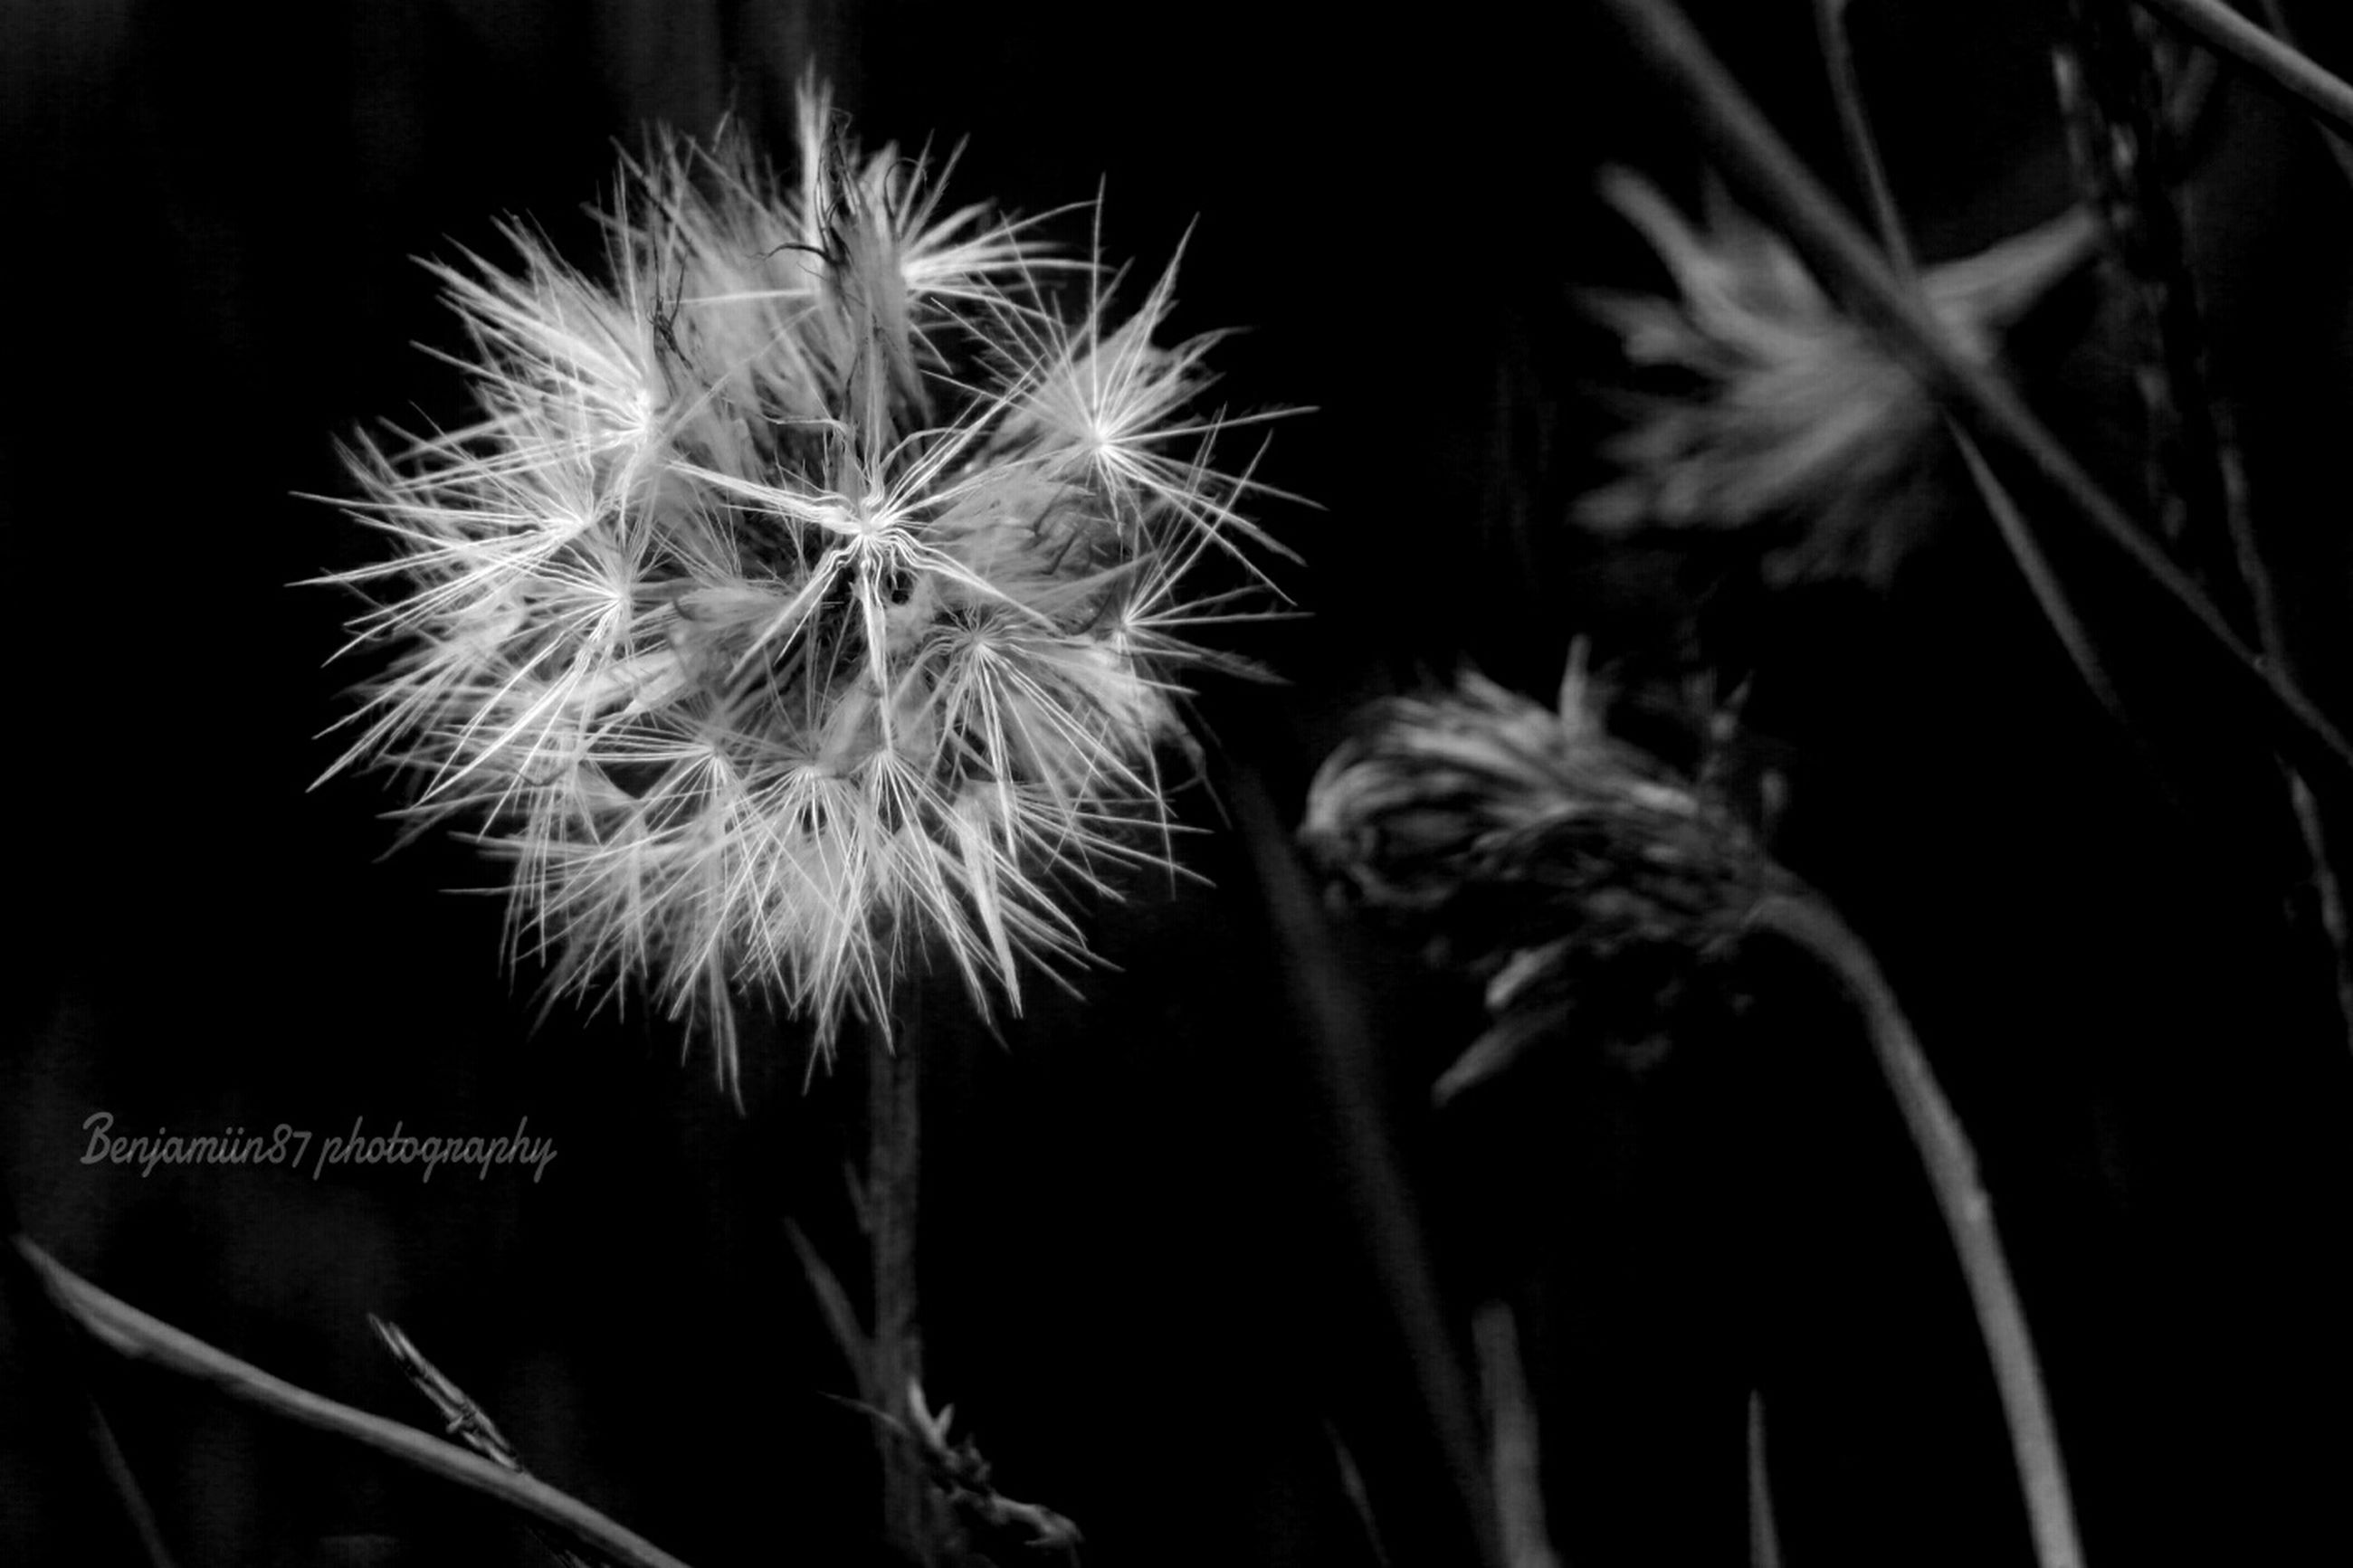 dandelion, flower, growth, fragility, close-up, freshness, flower head, plant, nature, stem, beauty in nature, focus on foreground, softness, wildflower, uncultivated, no people, outdoors, dandelion seed, single flower, white color